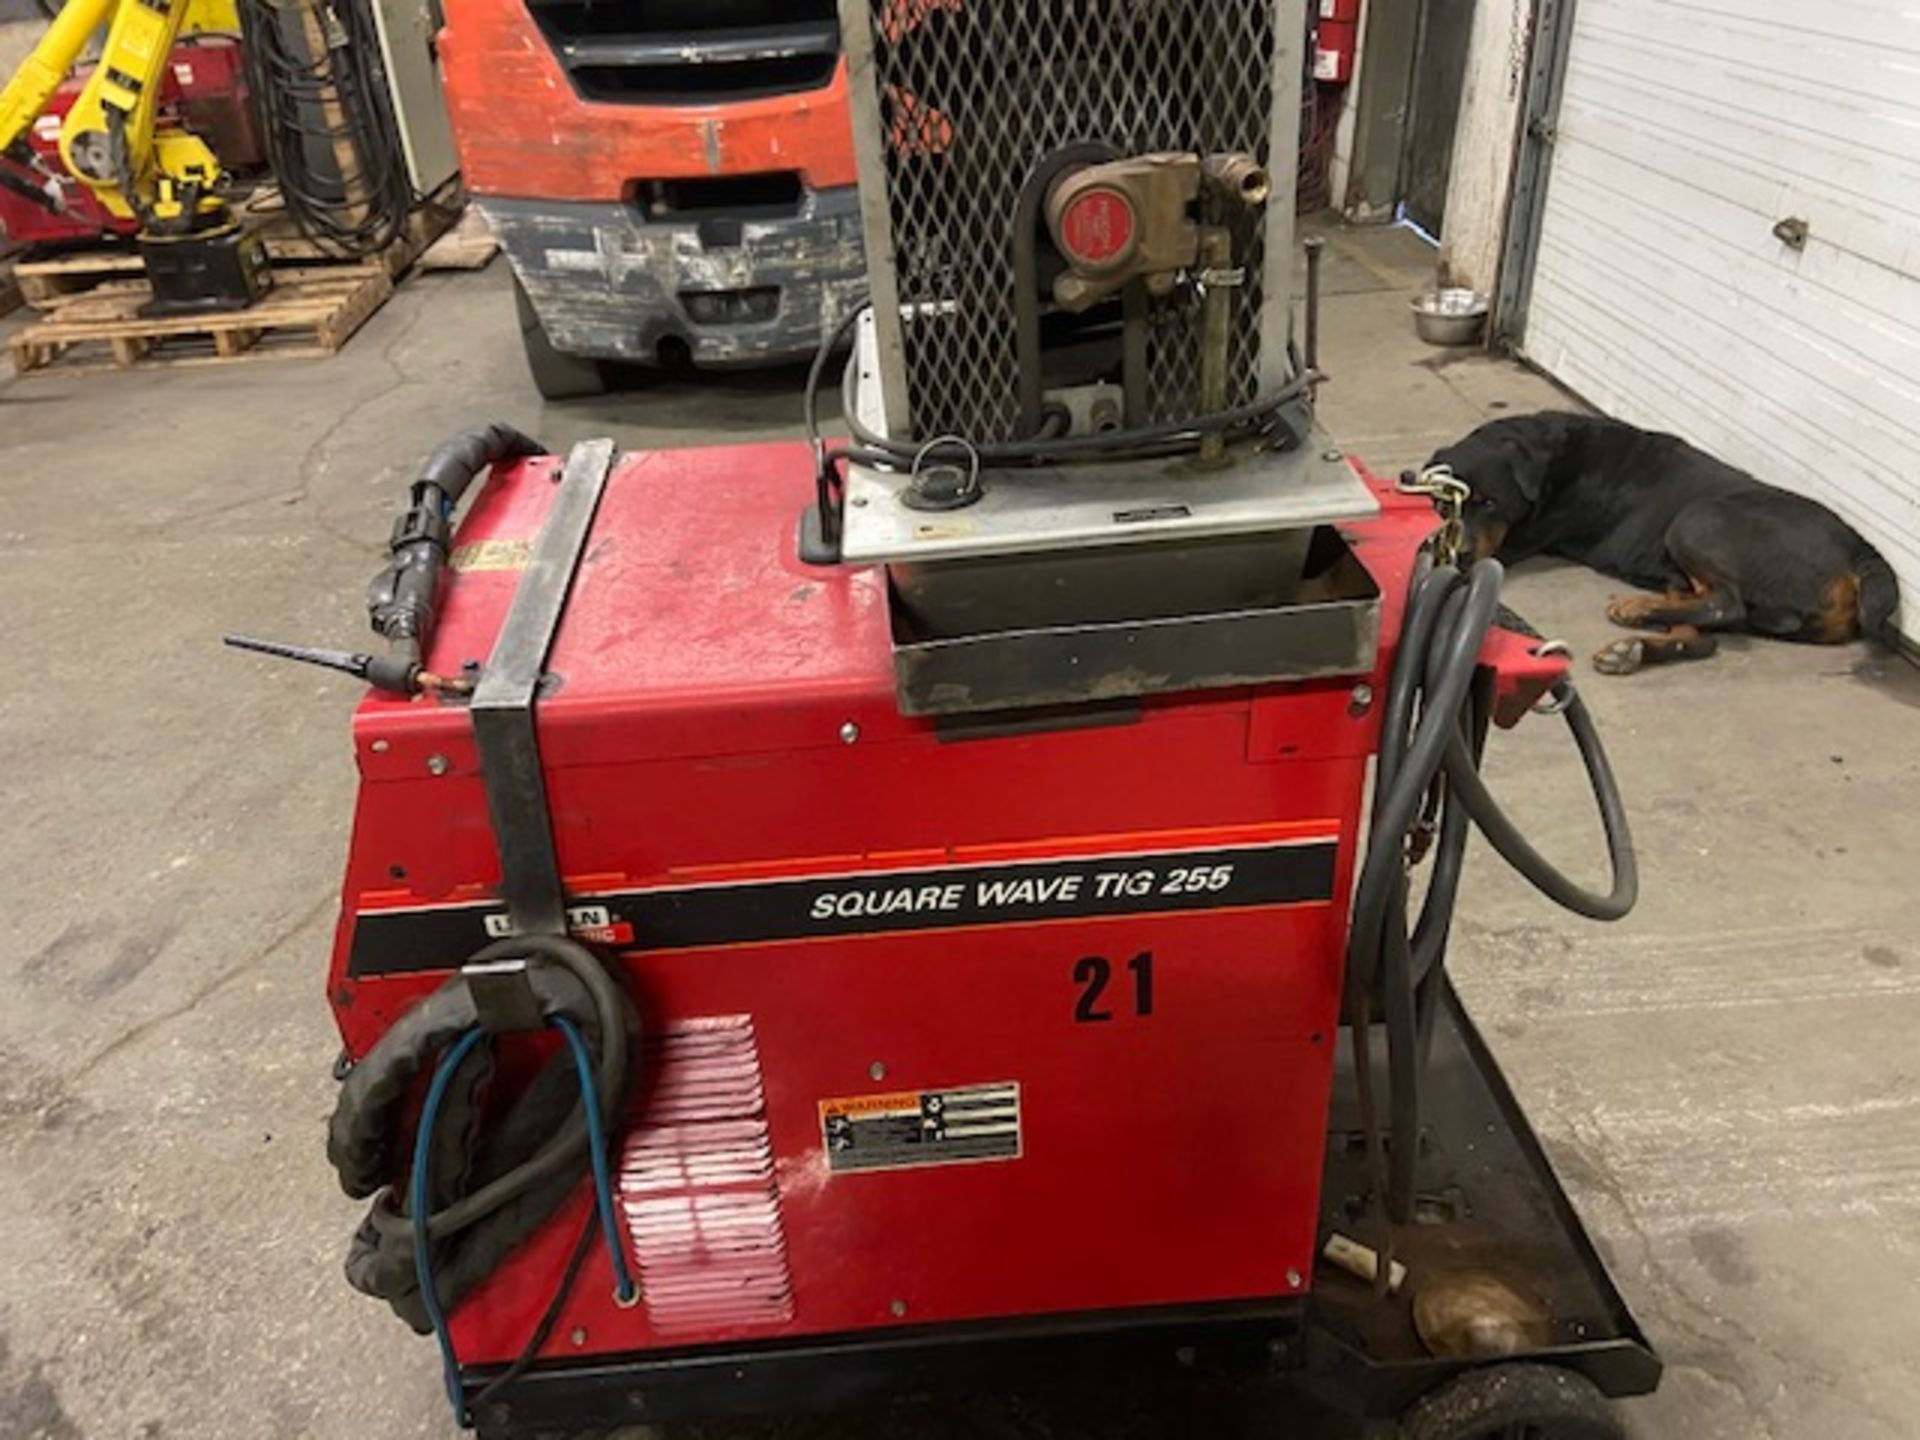 Lincoln Square Wave Tig 255 Welder 255 AMP COMPLETE with Cables and whip & Bernard Cooler unit 230/ - Image 2 of 2